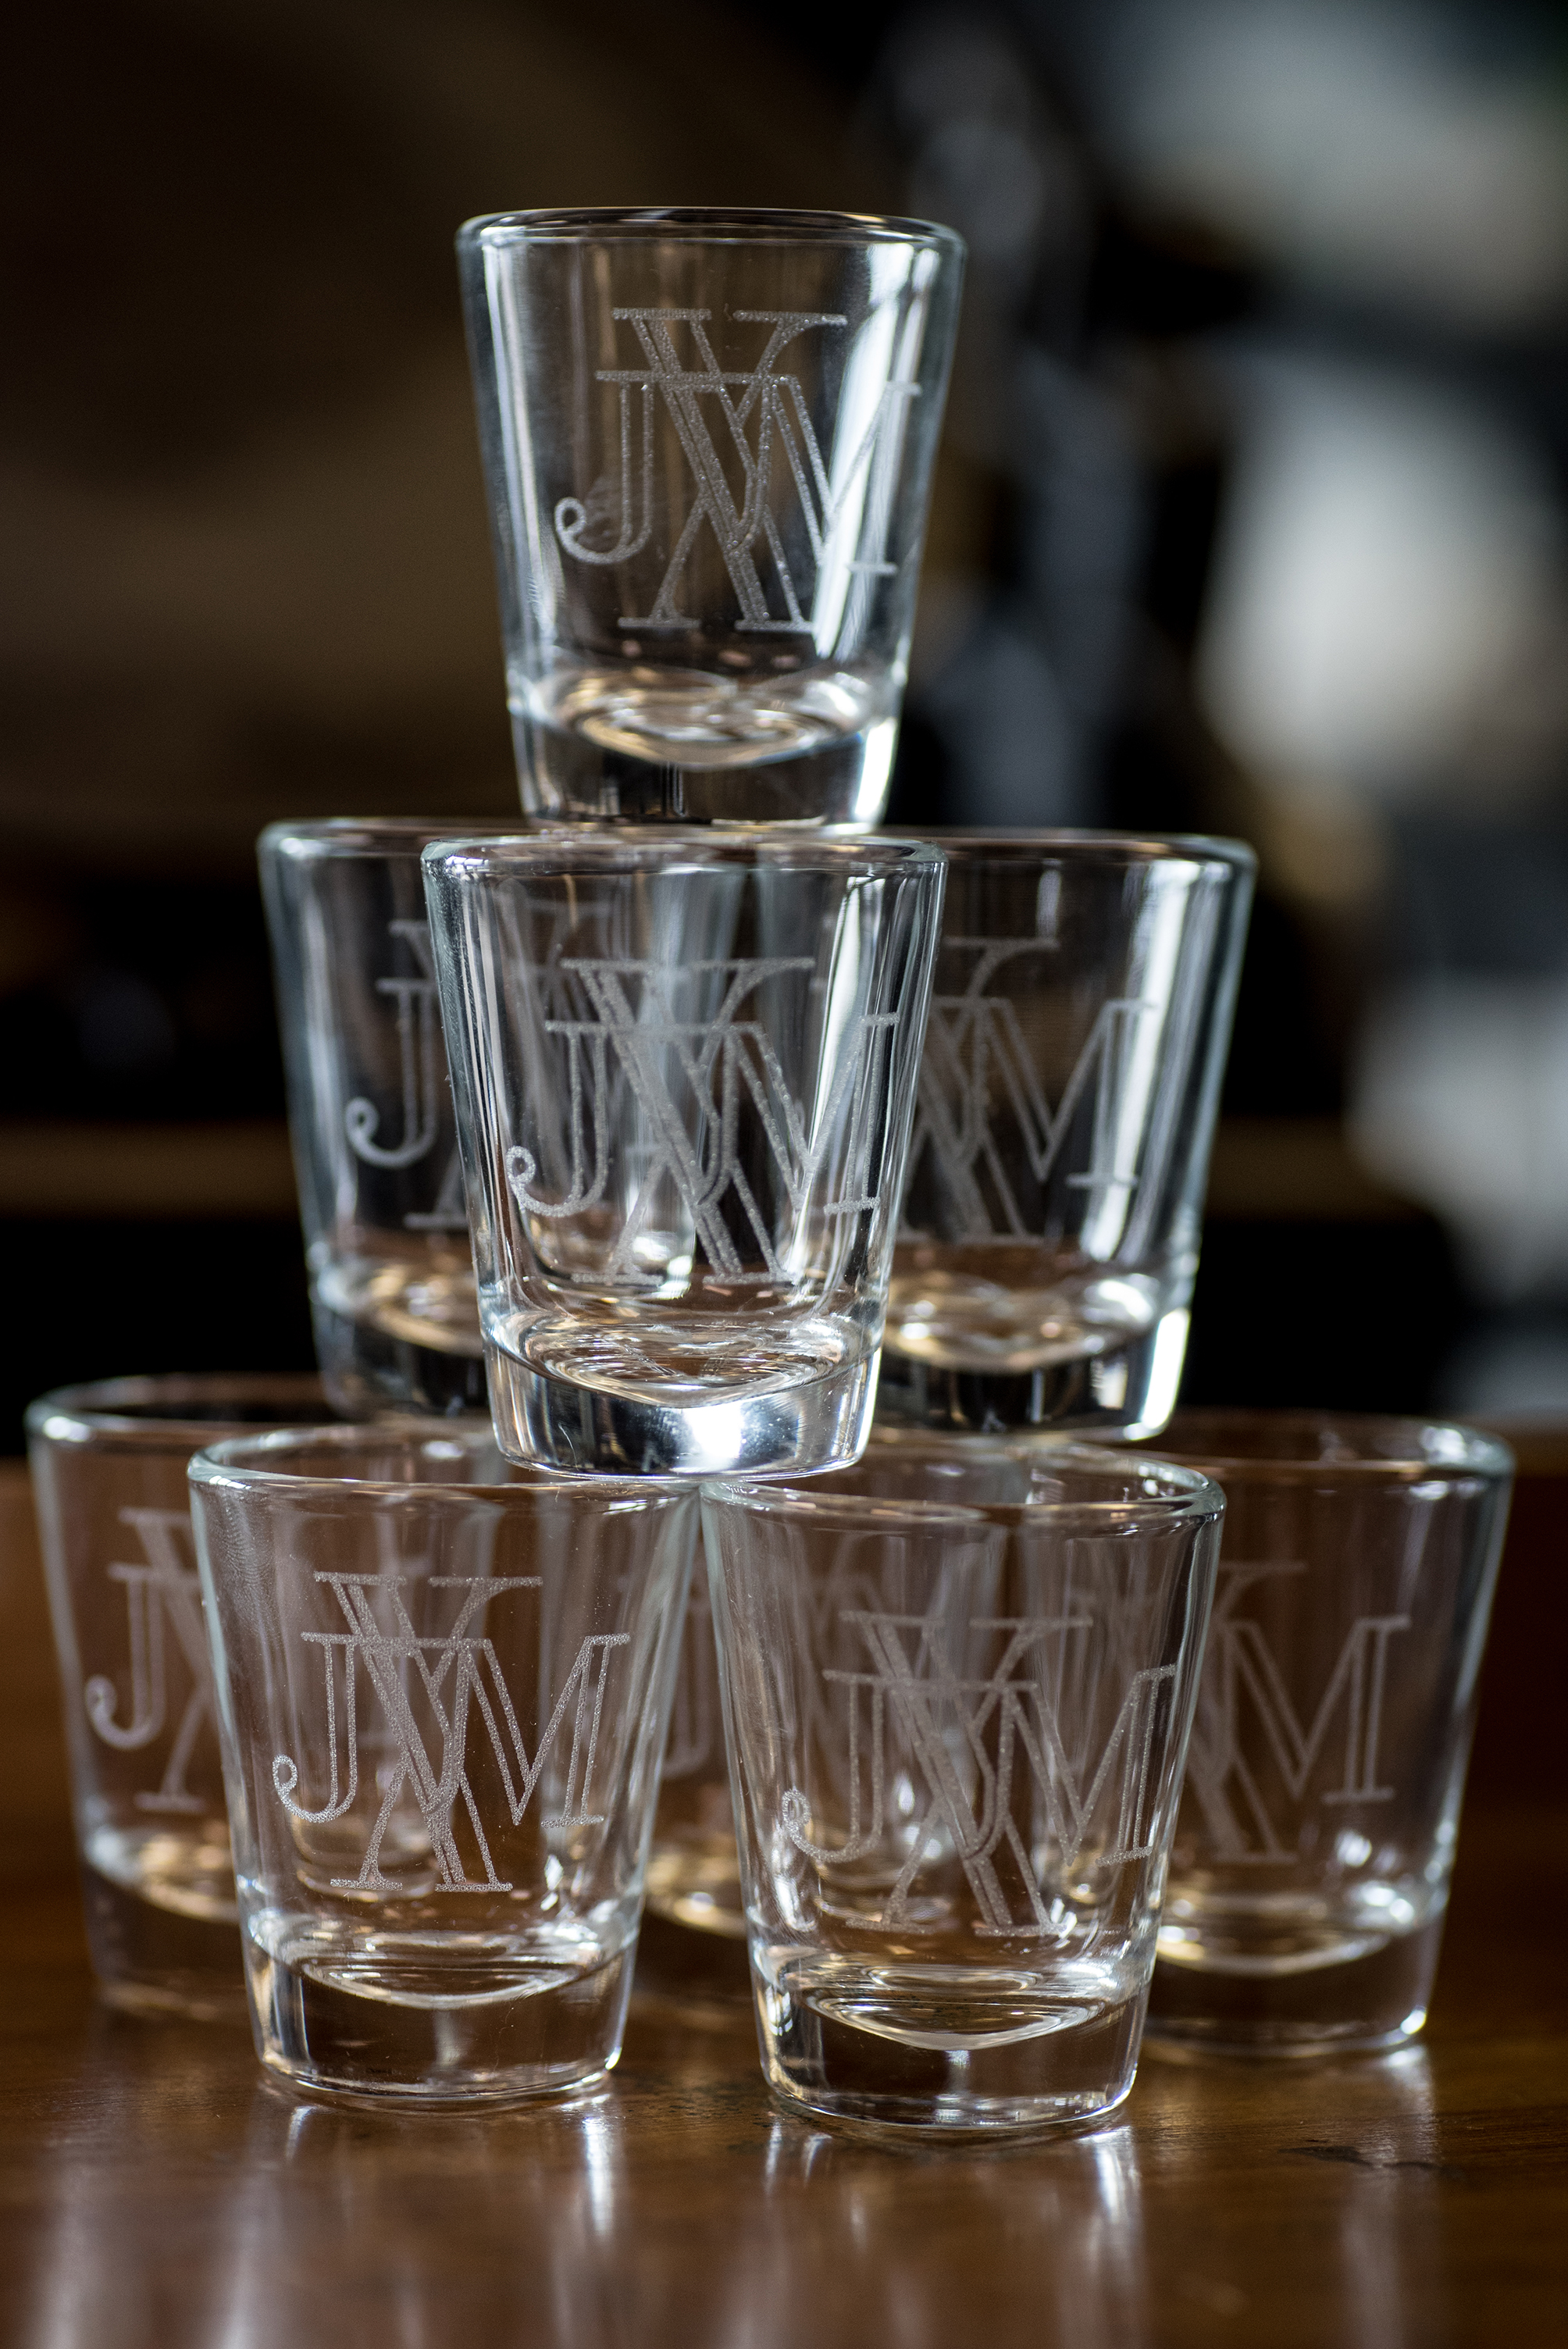 wedding-gift-shot-glass-laser-etched-monogram-design.jpg